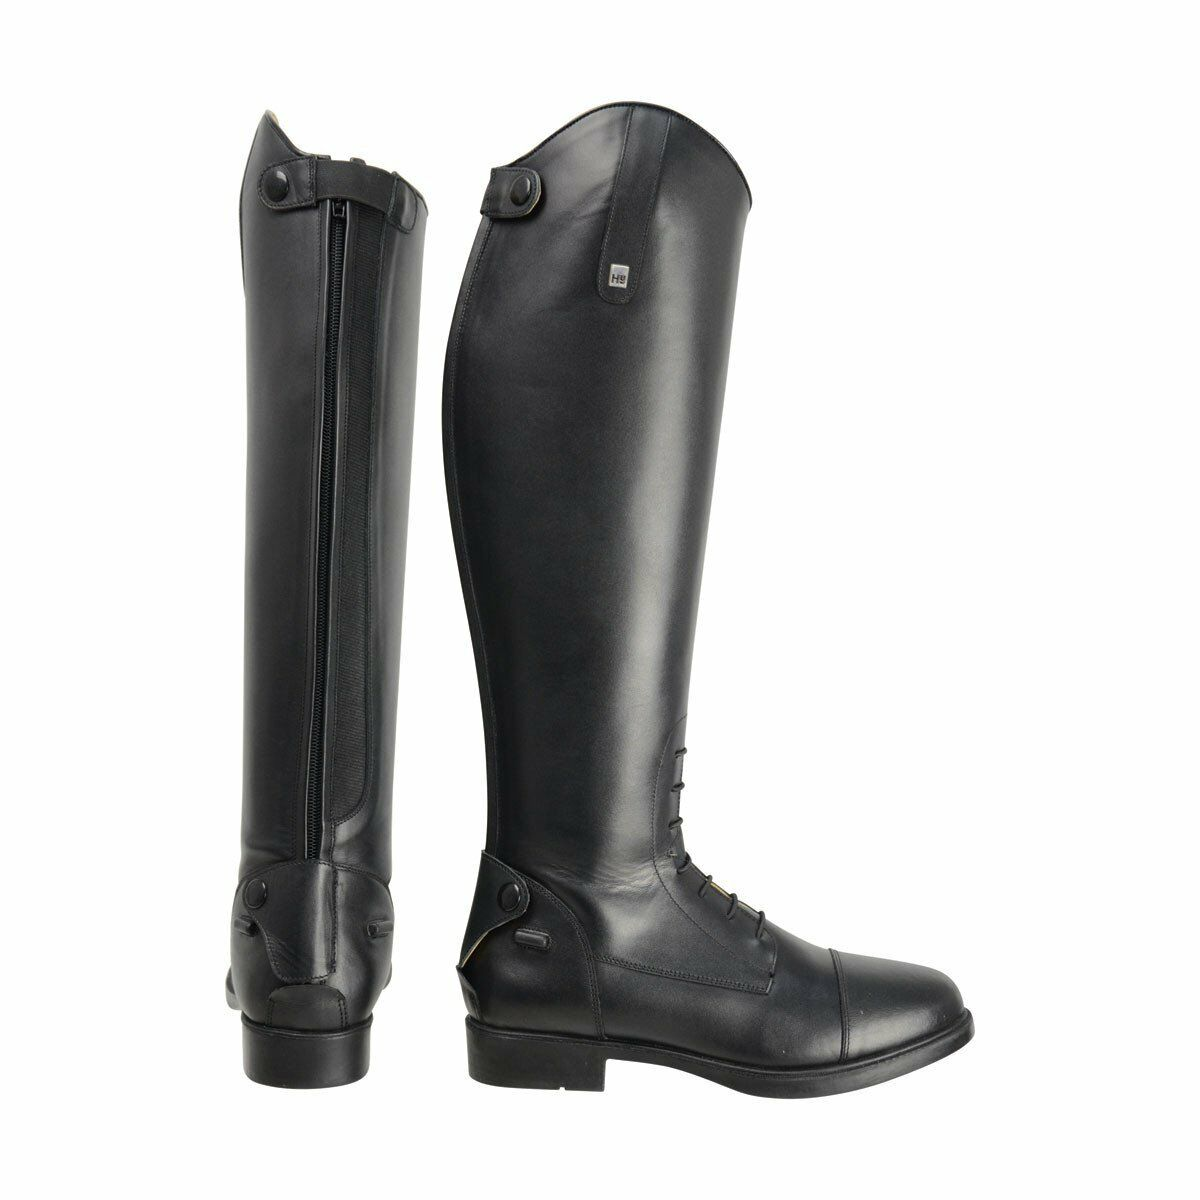 HyLand Milan Tall Leather Riding Boots